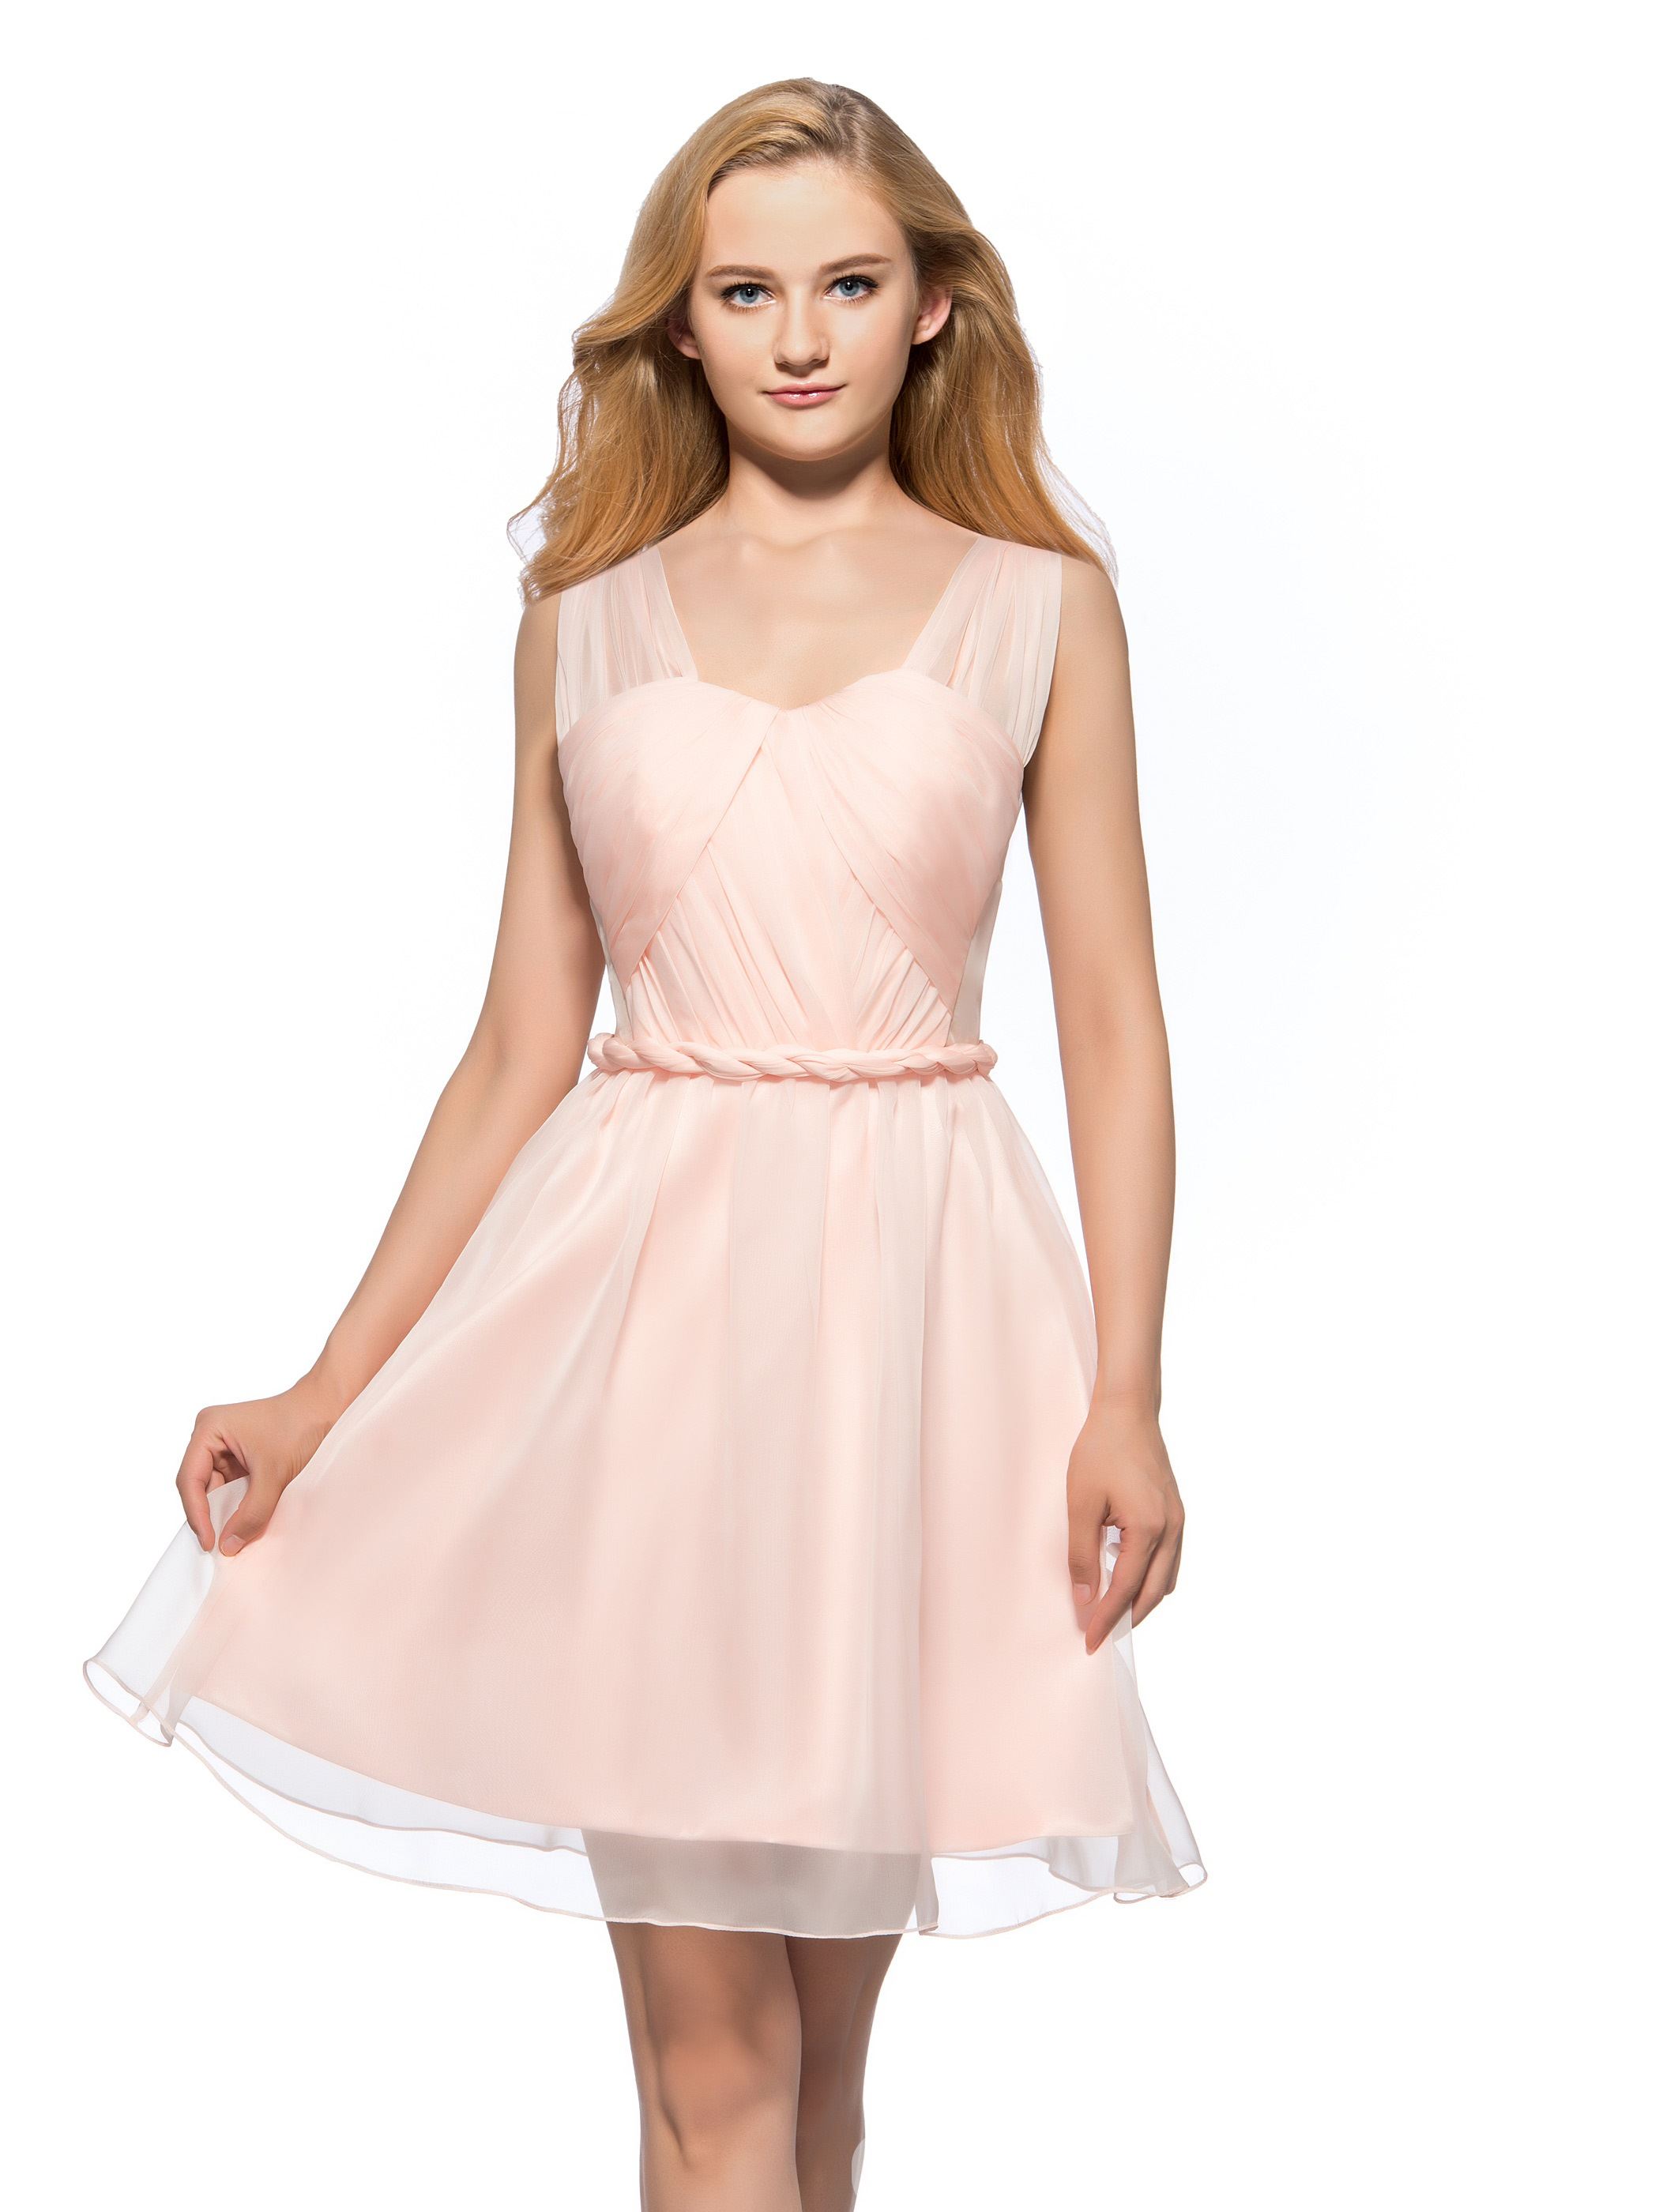 Pure Straps Pleats Sashes A-Line Short Homecoming Dress